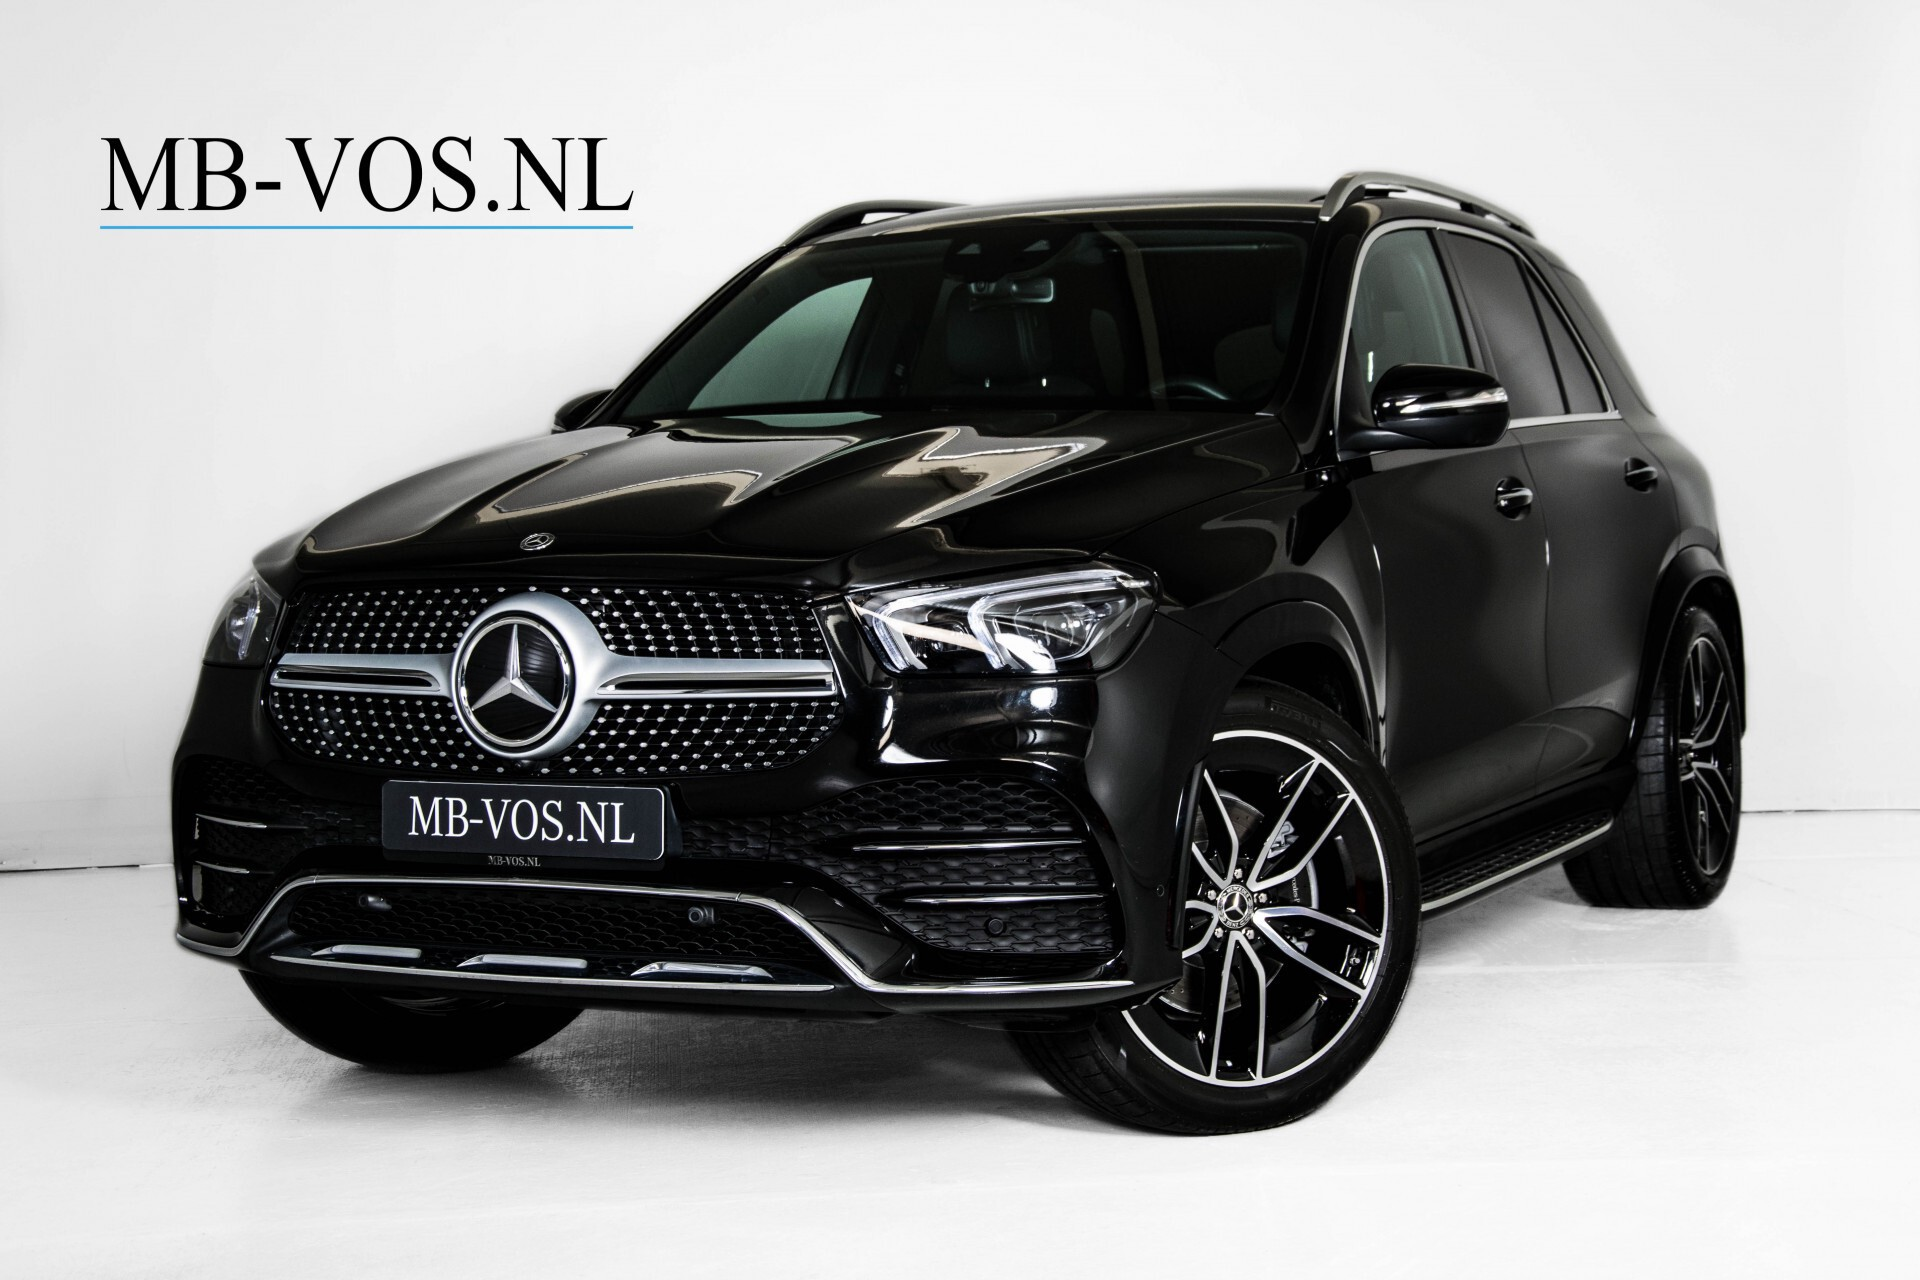 Mercedes-Benz GLE 400 d 4-M Luchtvering/Distronic/Keyless/HUD/Burmester/Nappa/360 camera/Panorama Aut9 Foto 1